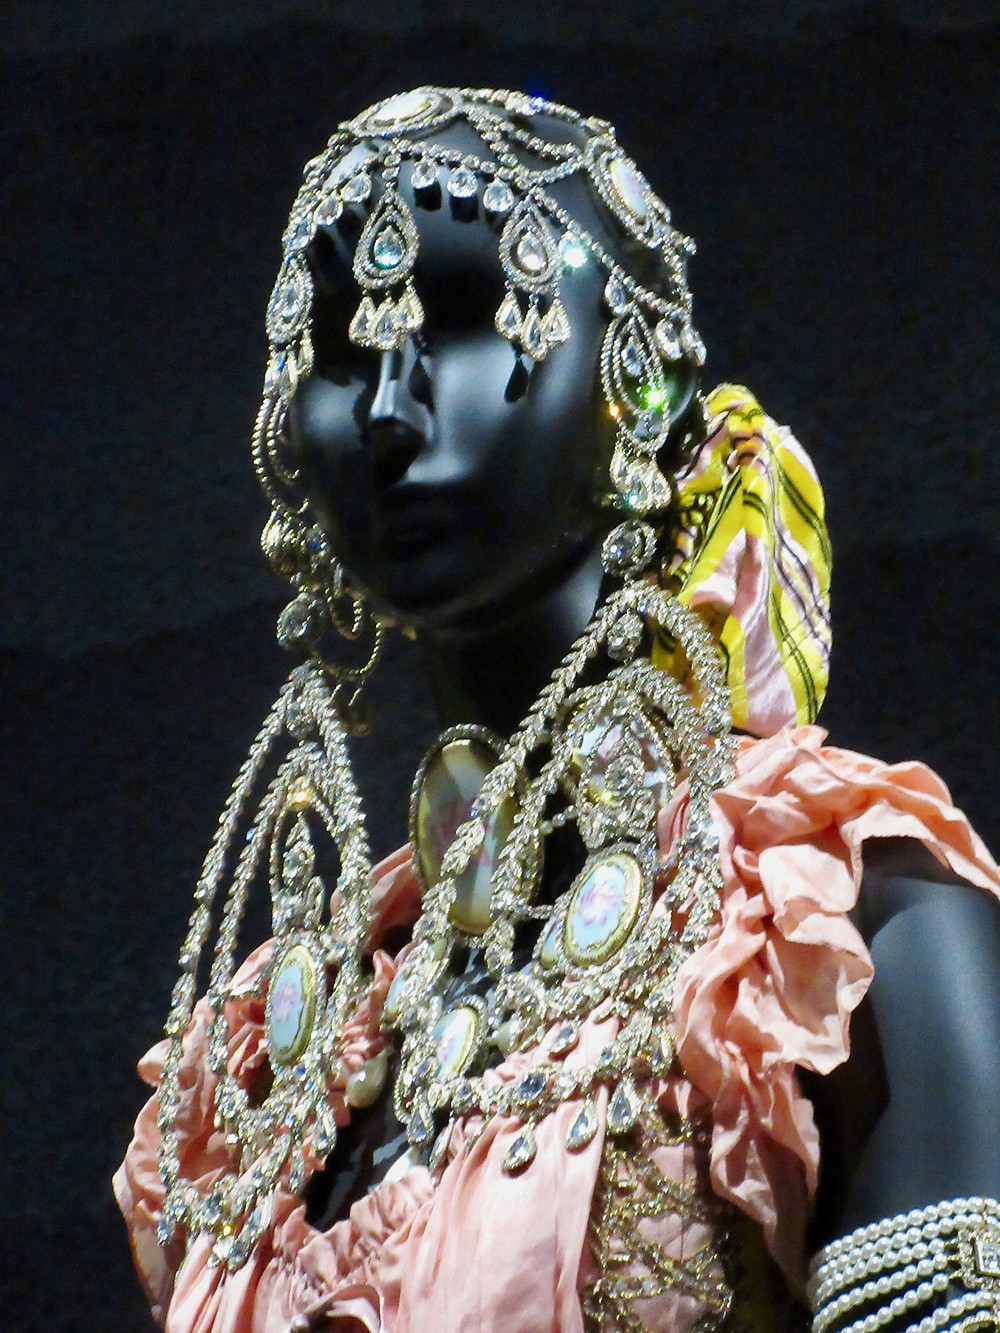 Close up of Headpiece and jewellery, John Galliano Haute Couture Autumn/Winter 1997